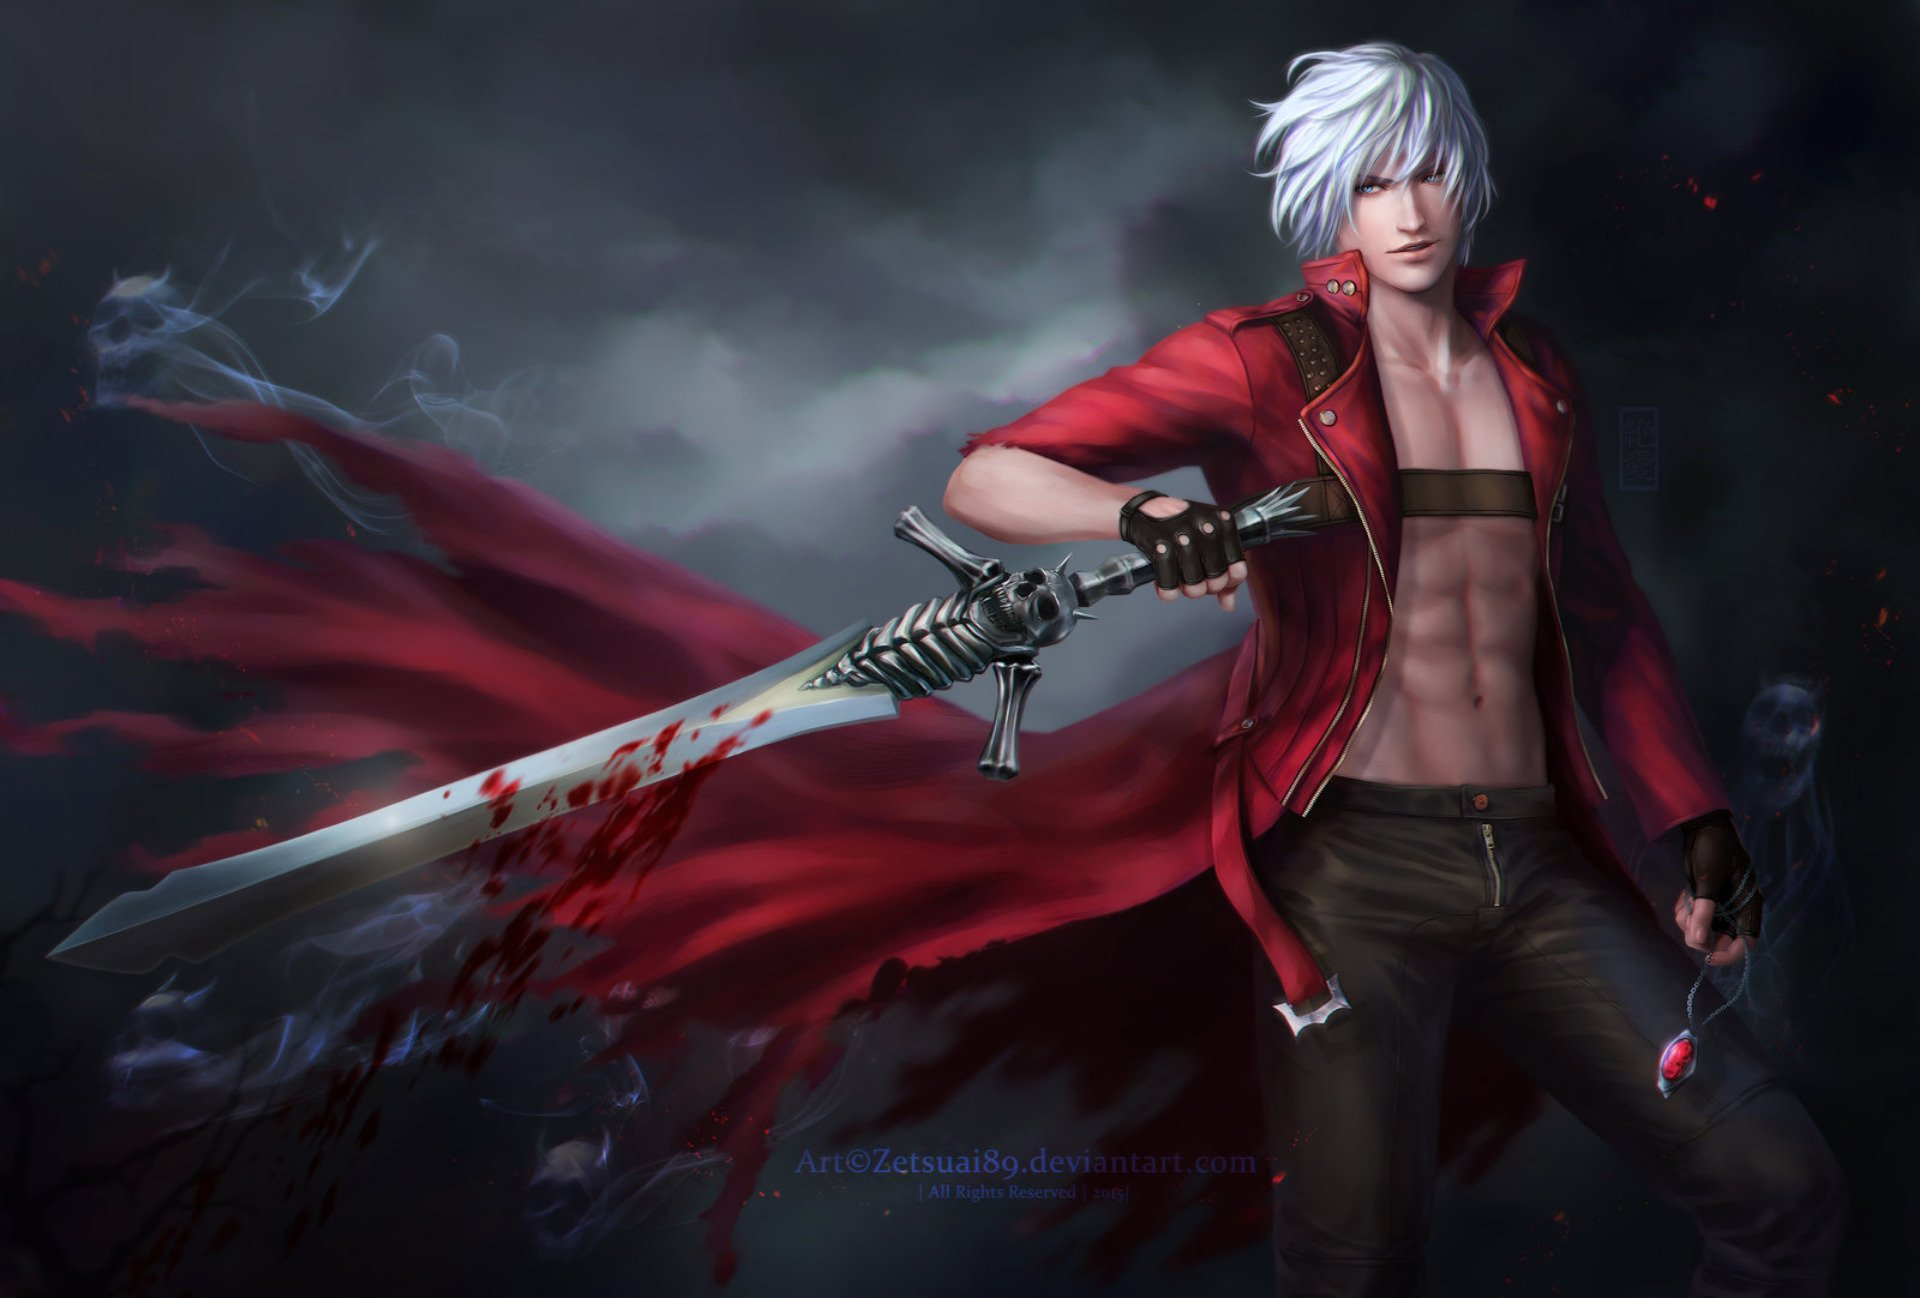 Devil May Cry 3 Dante S Awakening Hd Wallpaper Background Image